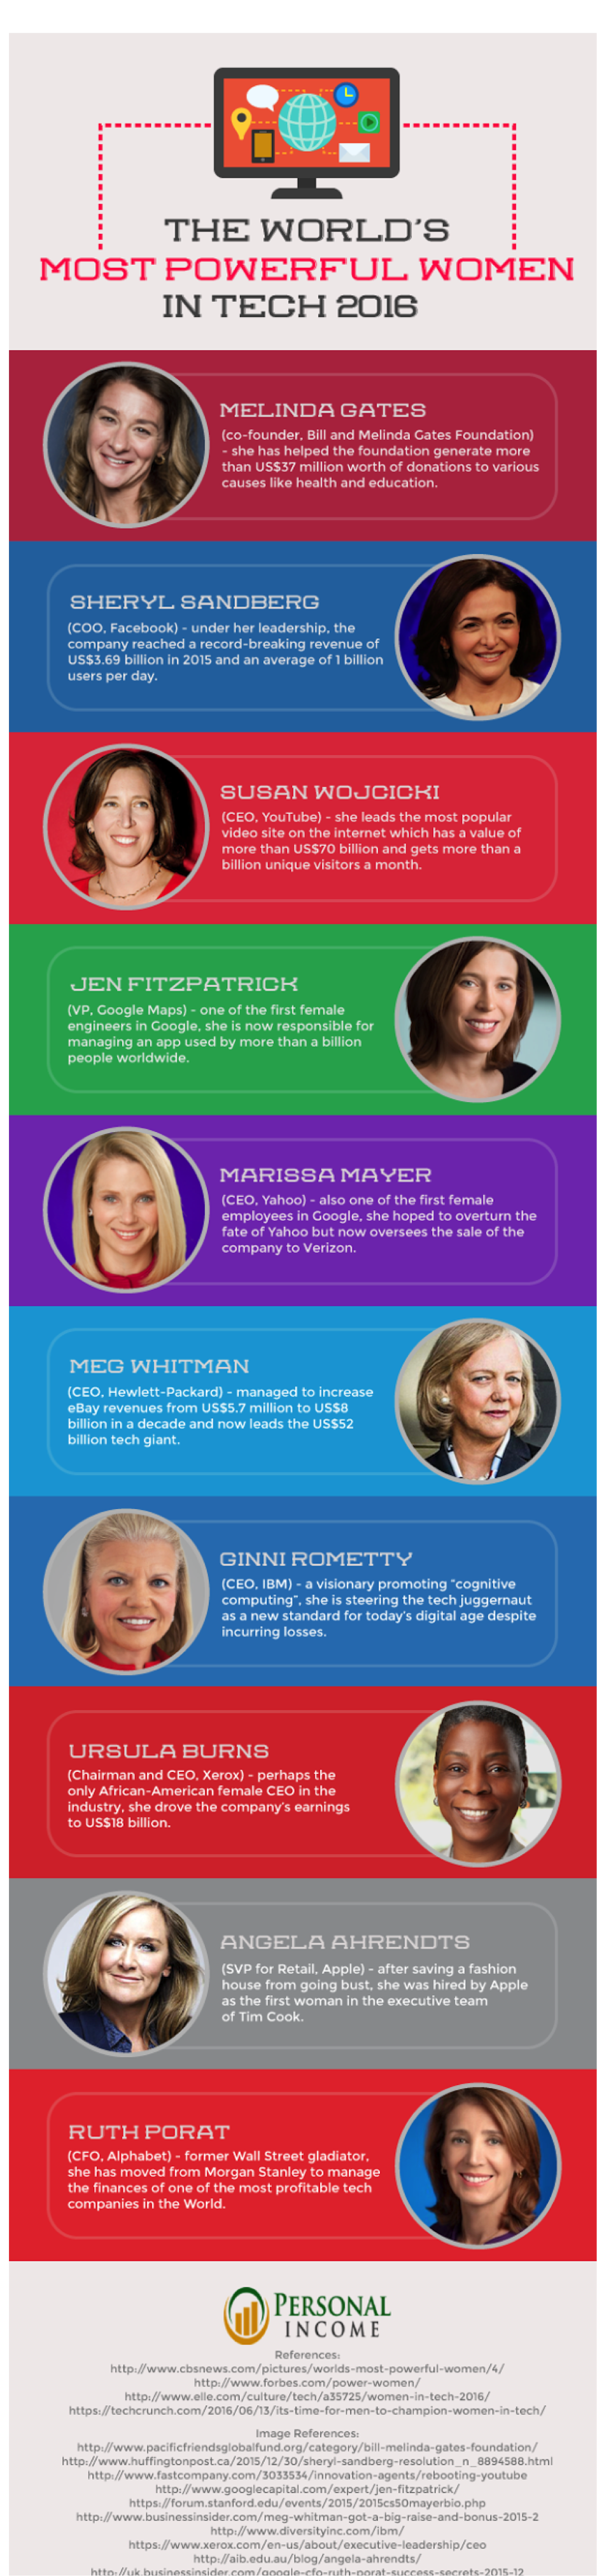 PersonalIncome.com / http://www.personalincome.org/worlds-most-powerful-women-in-tech/